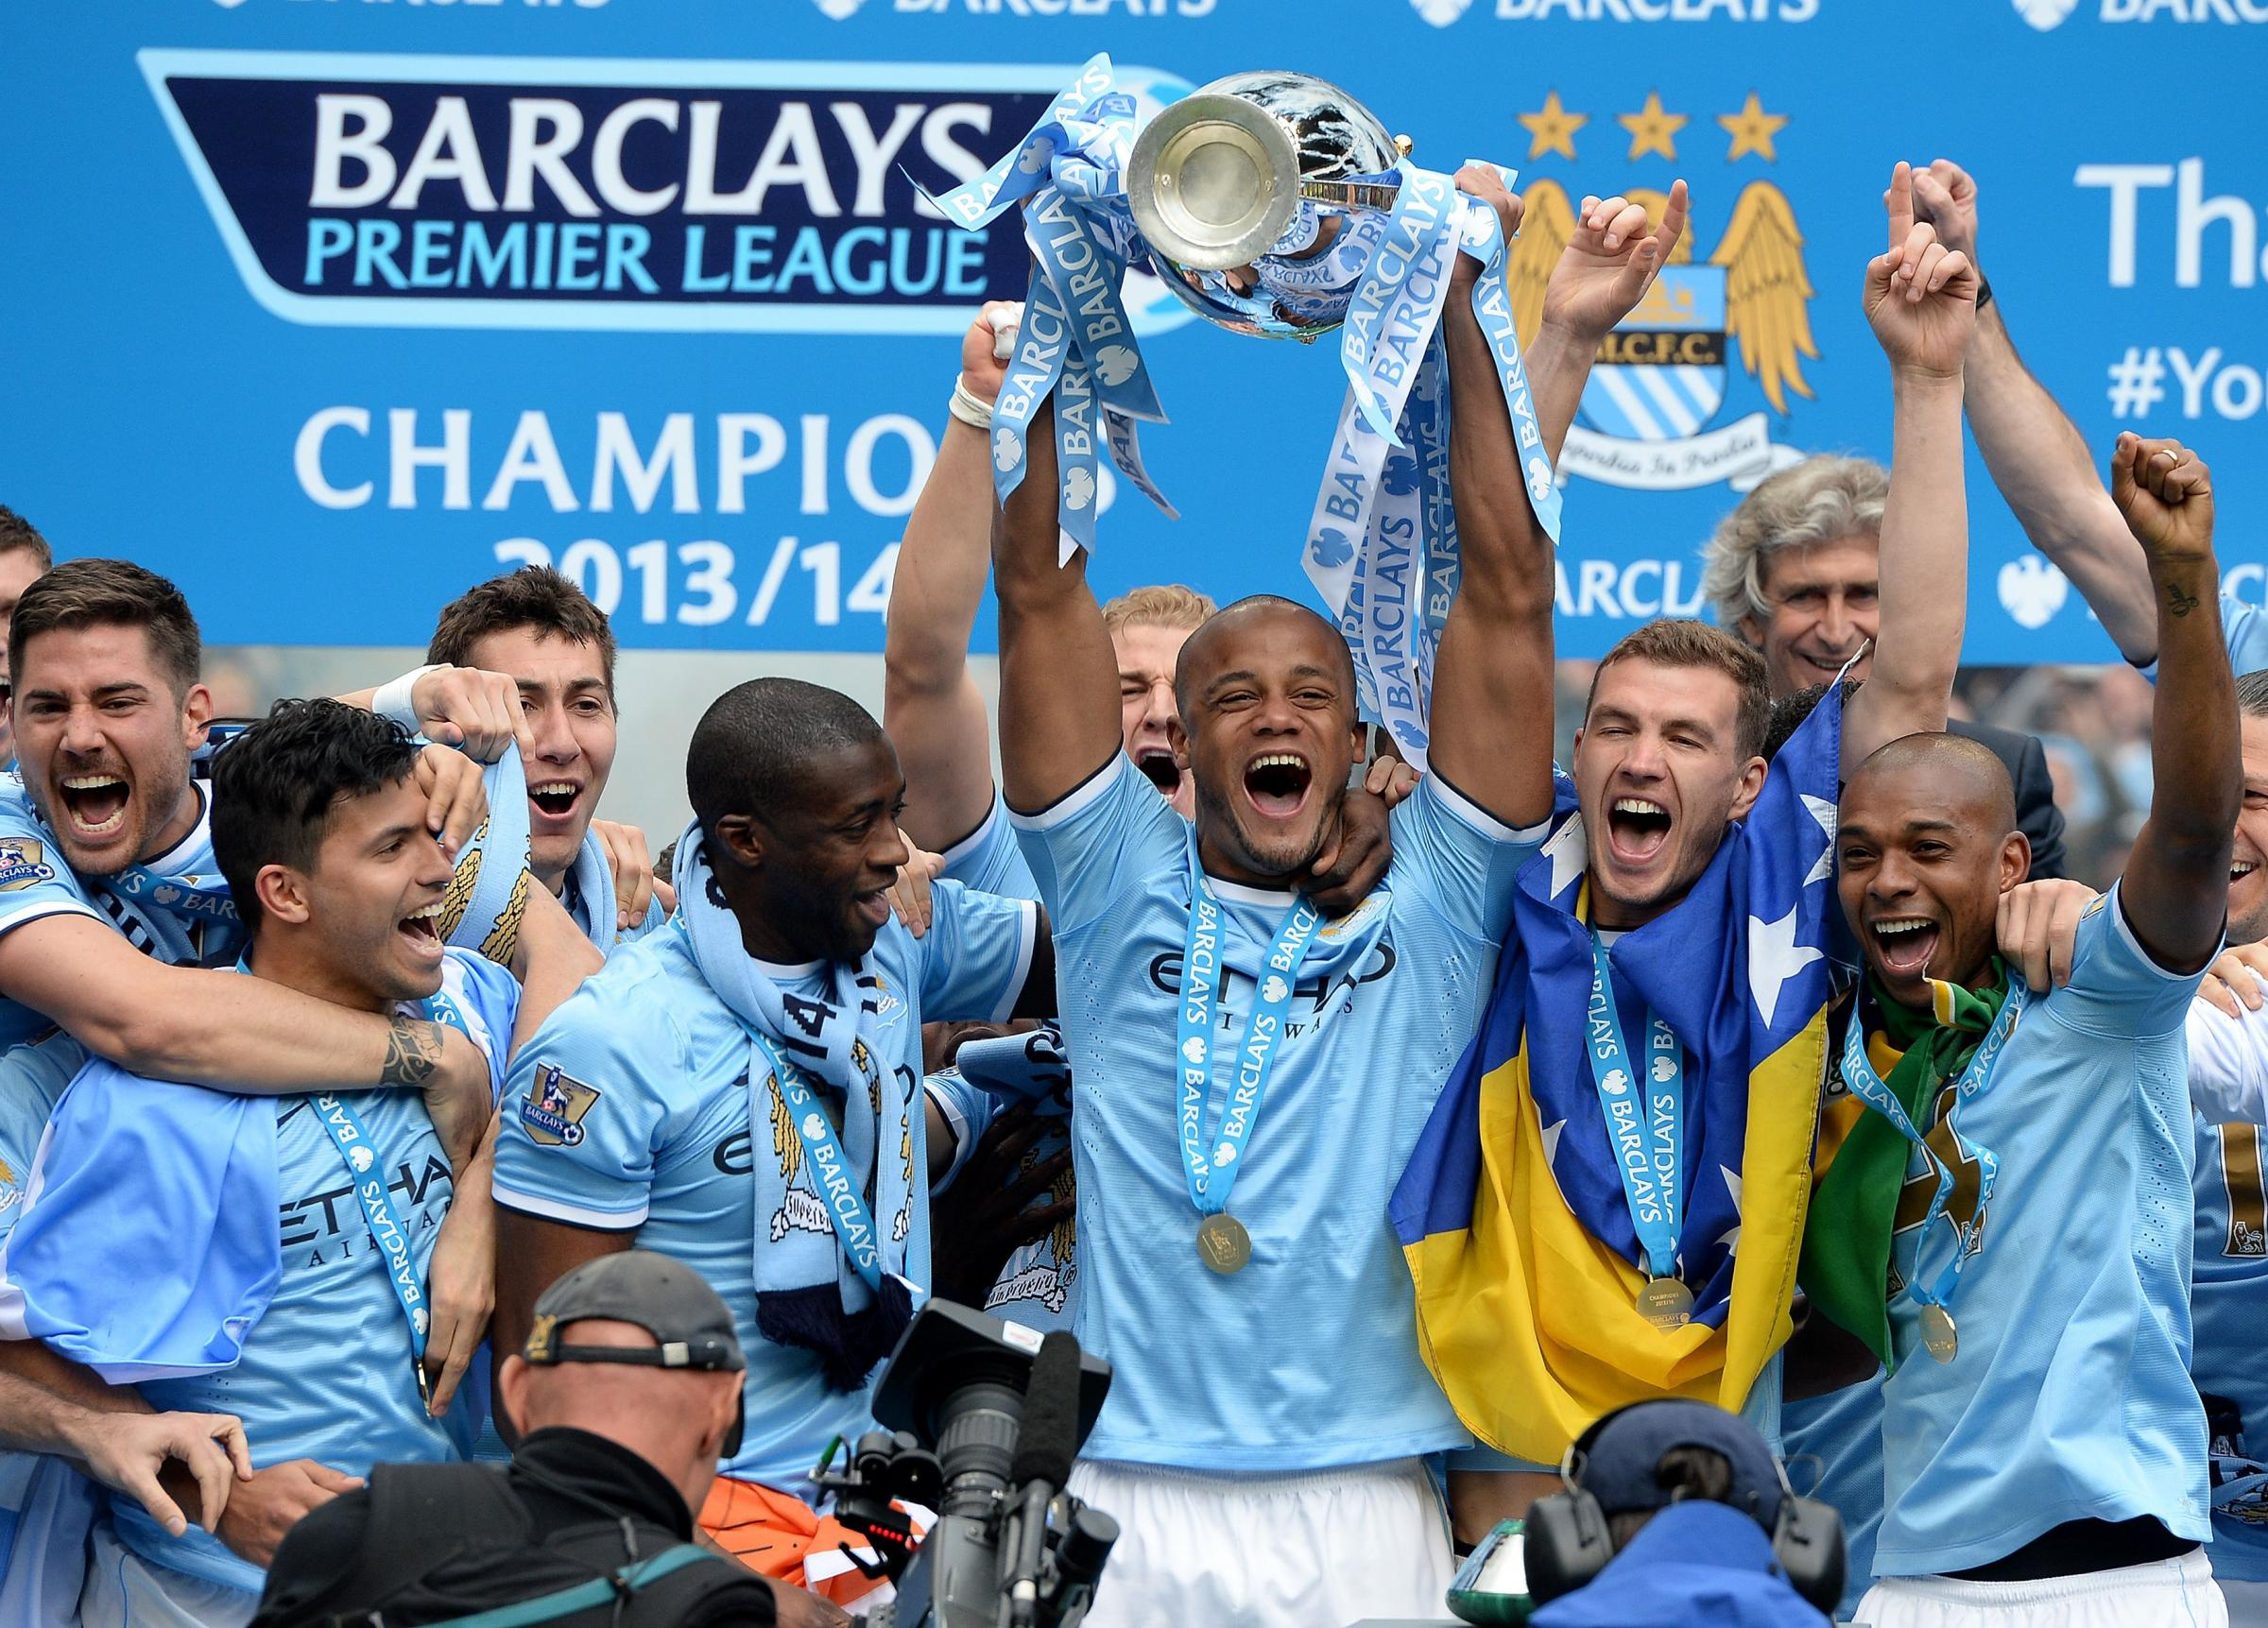 Manchester City captain Vincent Kompany leads the celebrations at the Etihad Stadium after his team won the Premier League title for the second time in three seasons. A comfortable 2-0 win over West Ham meant Liverpool's win over Newcastle didn't matt